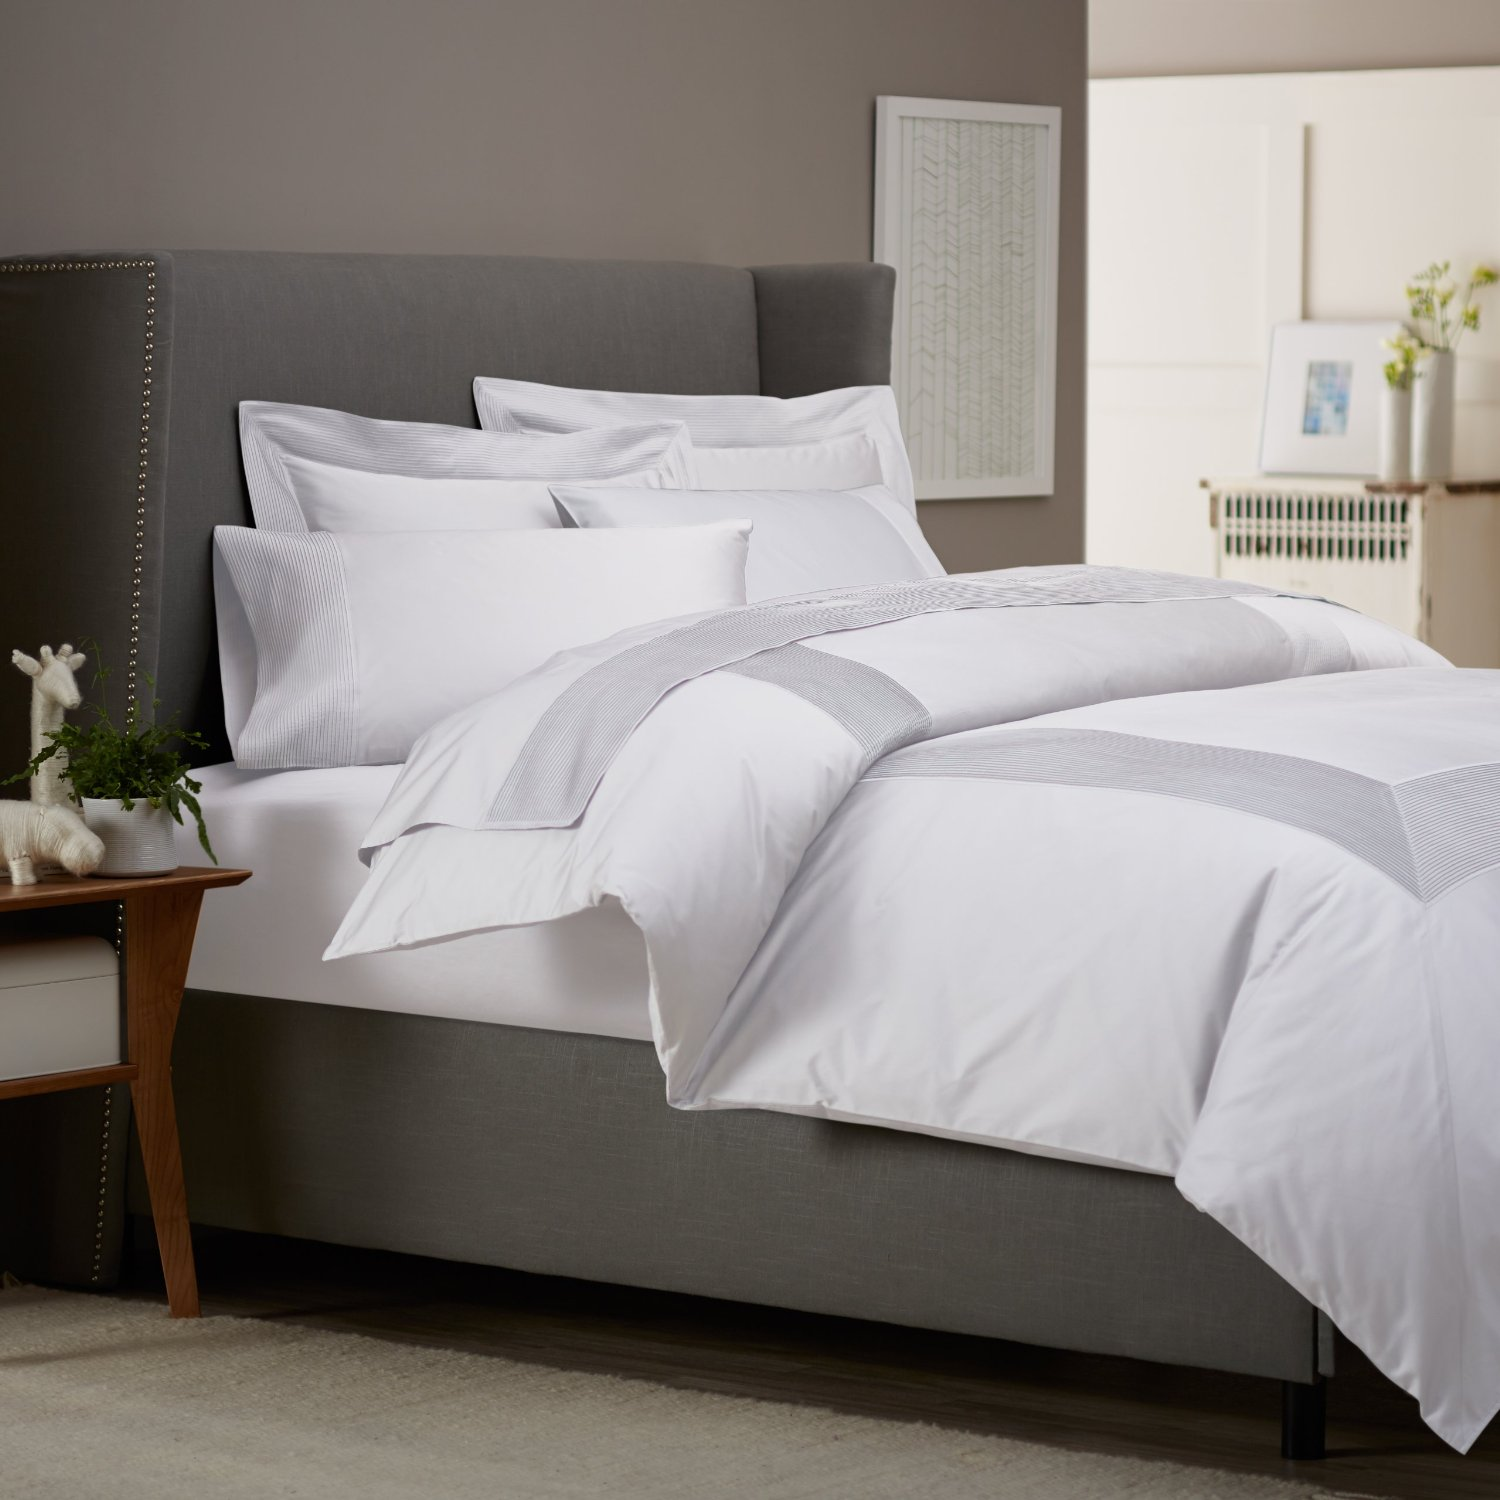 Get alluring visage by displaying a white comforter sets for Bedding fabric bedding